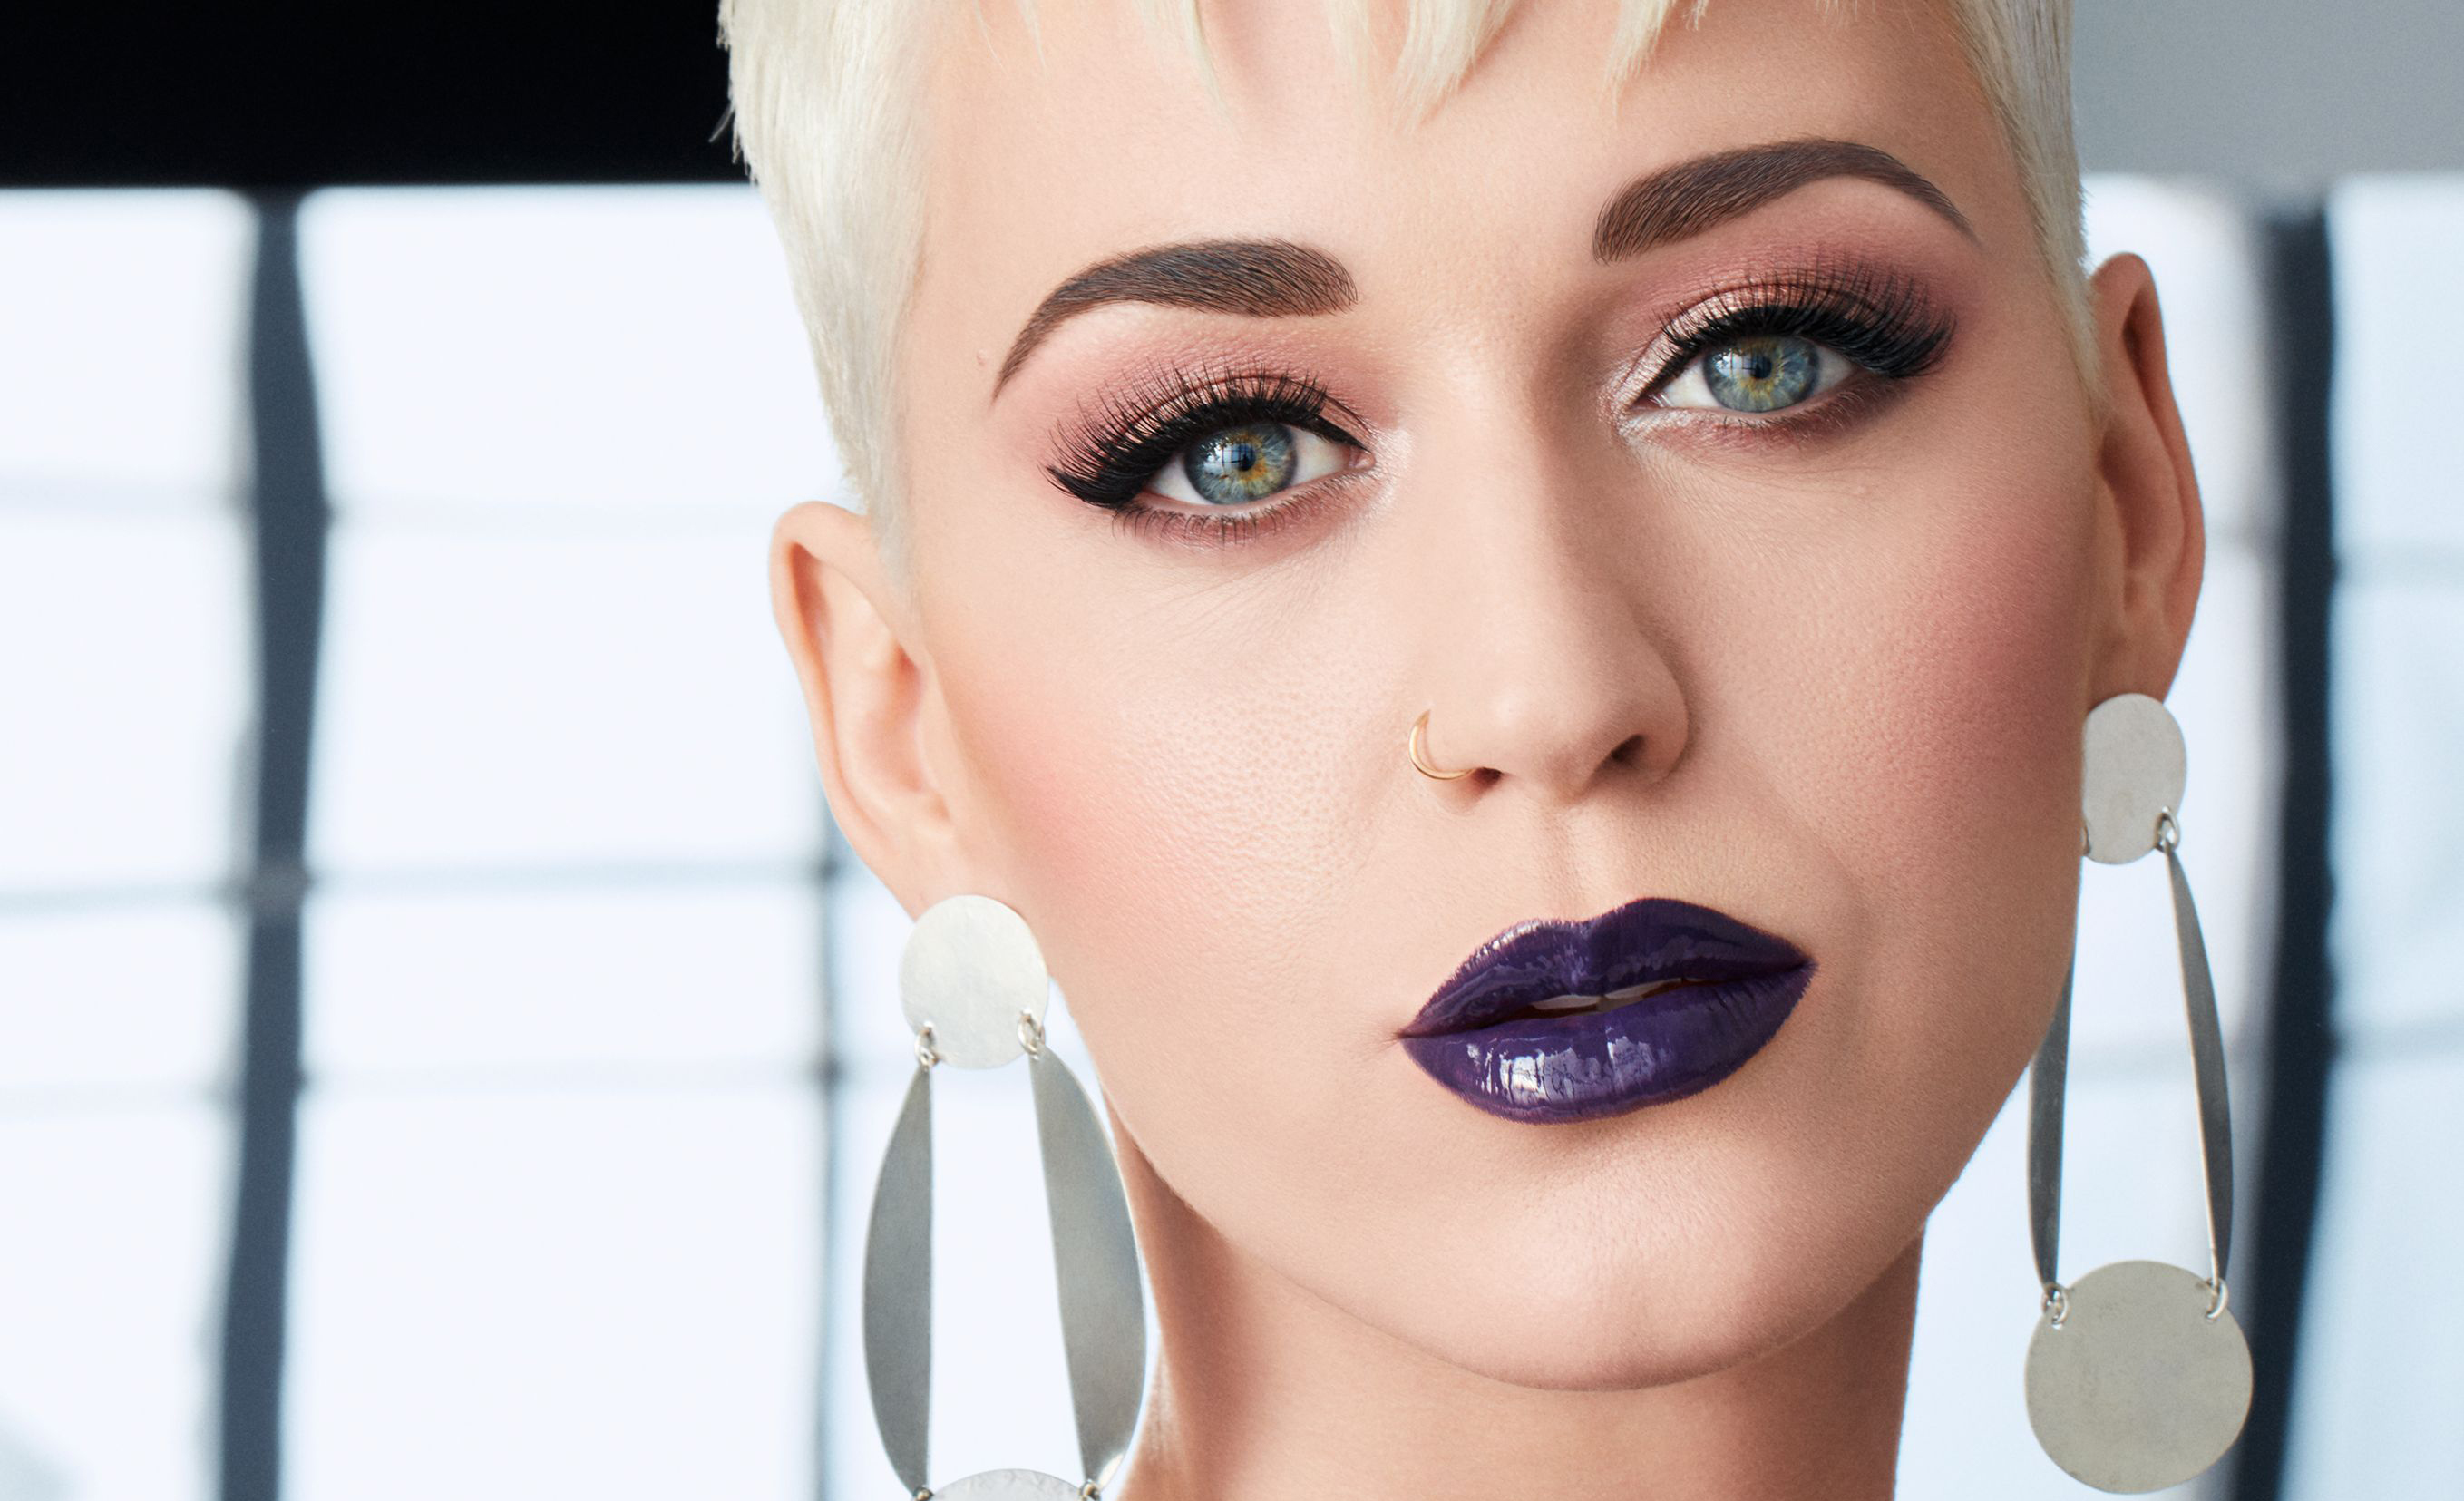 Katy Perry Cover Girl 2018 Hd Celebrities 4k Wallpapers Images